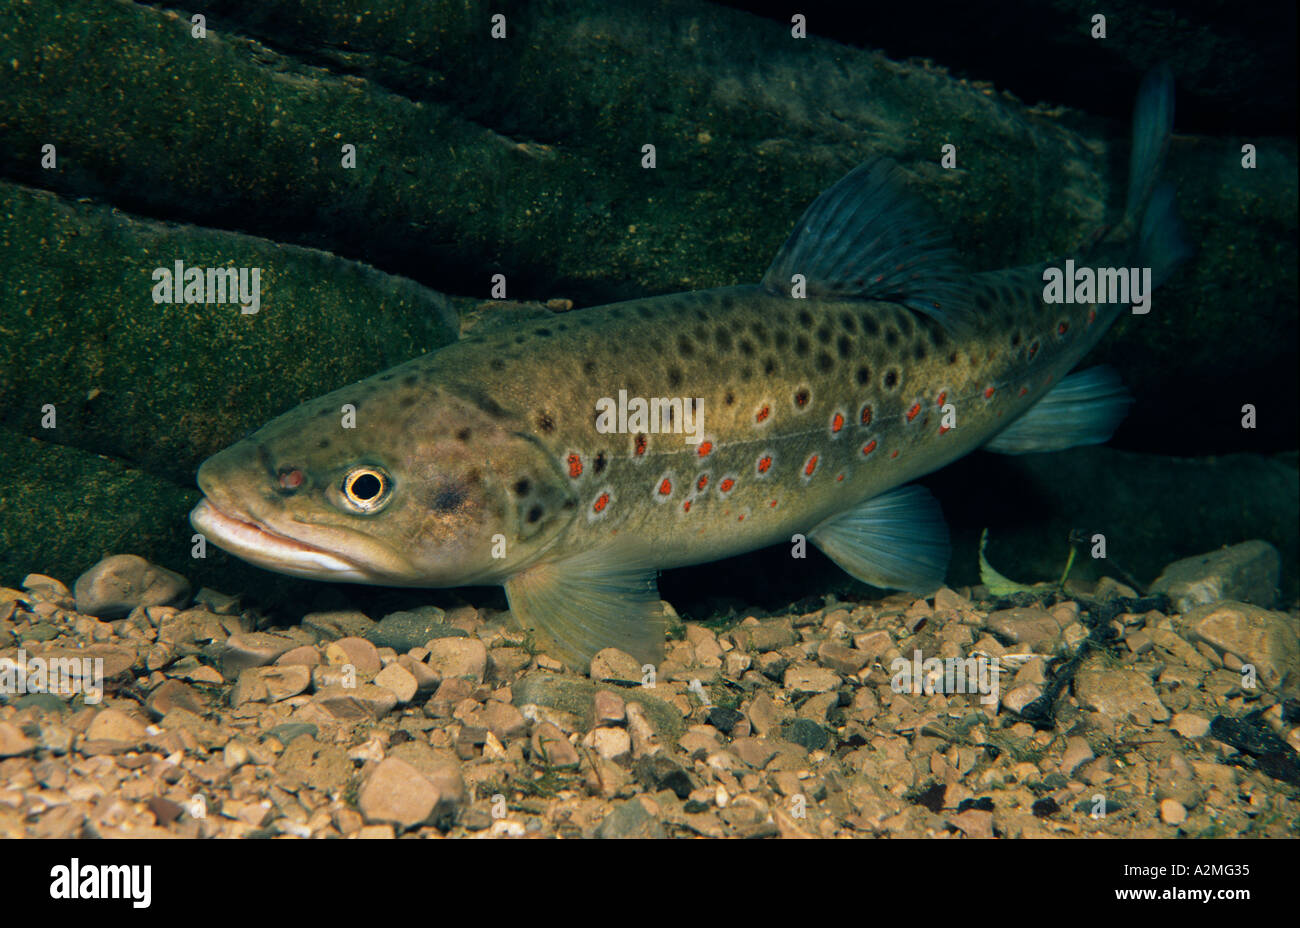 Brown trout, Salmo trutta fario Stock Photo